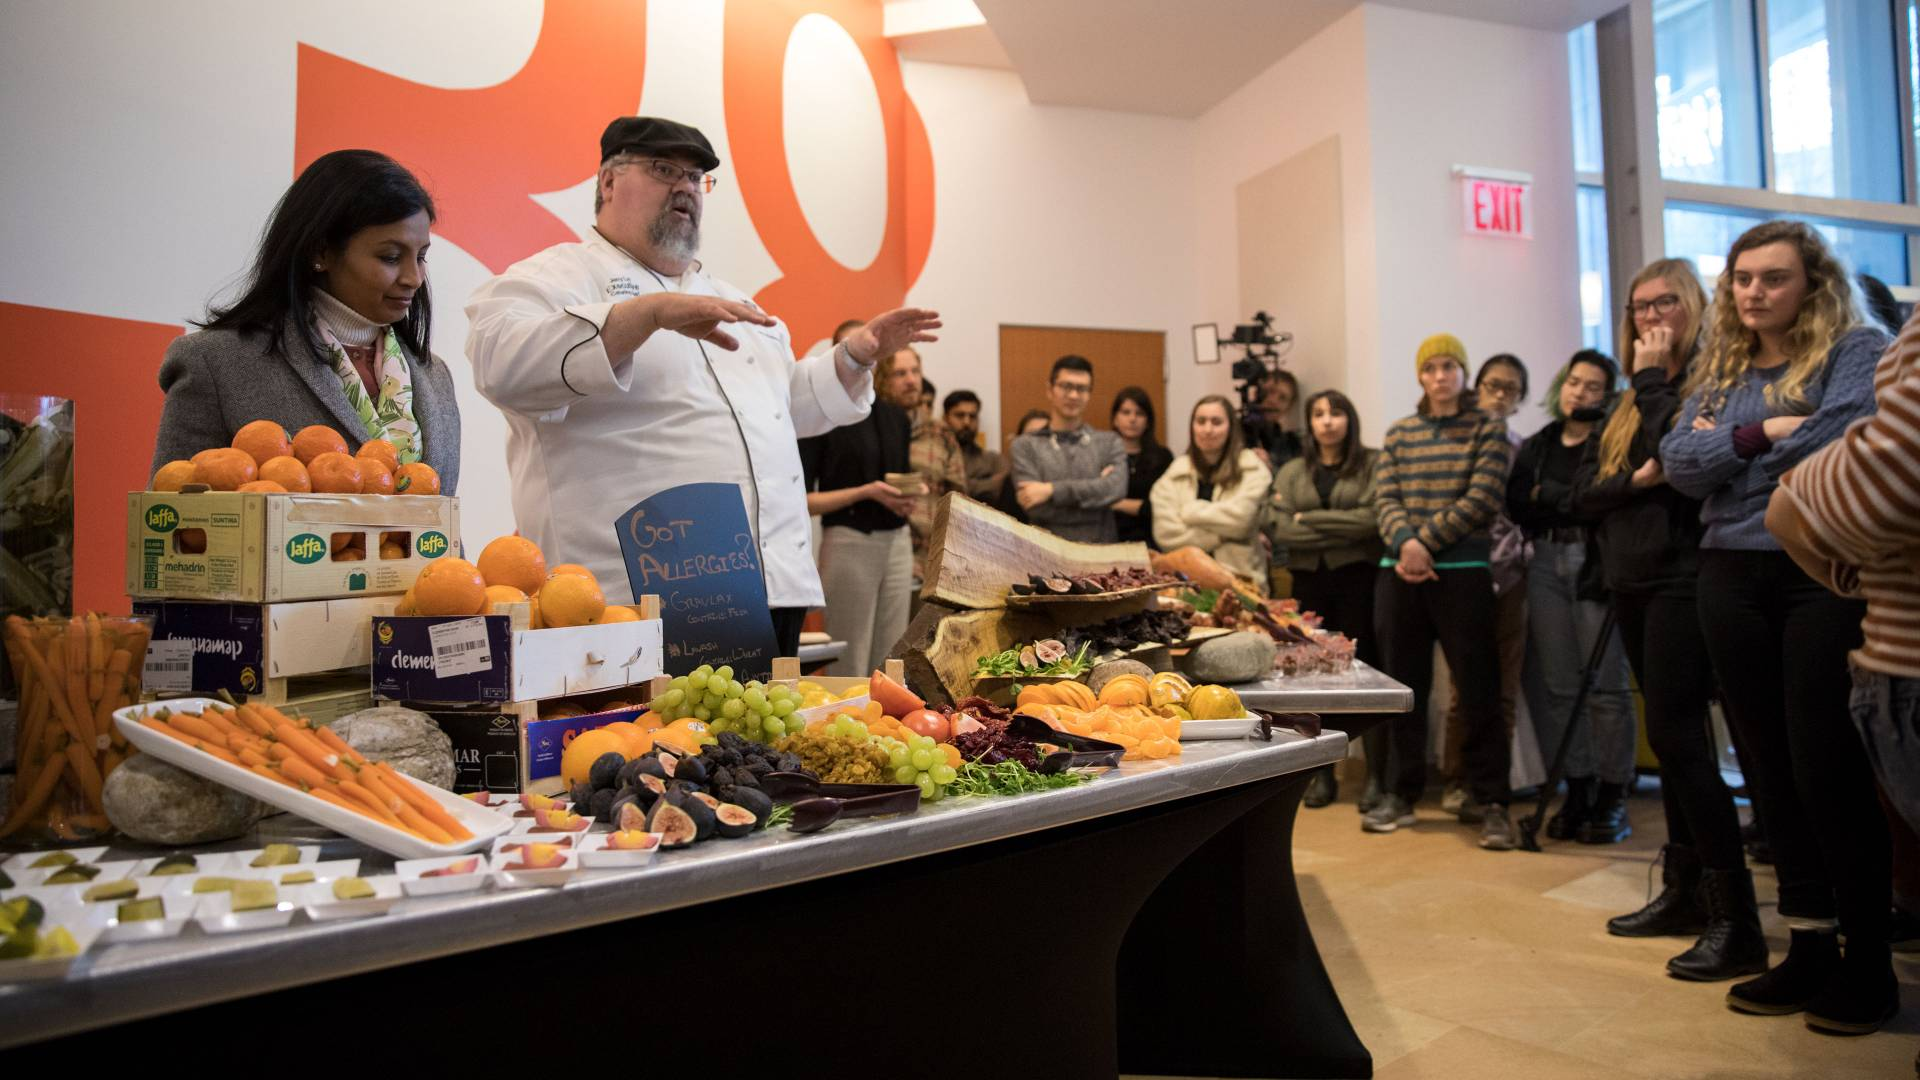 Chef doing demonstration for students